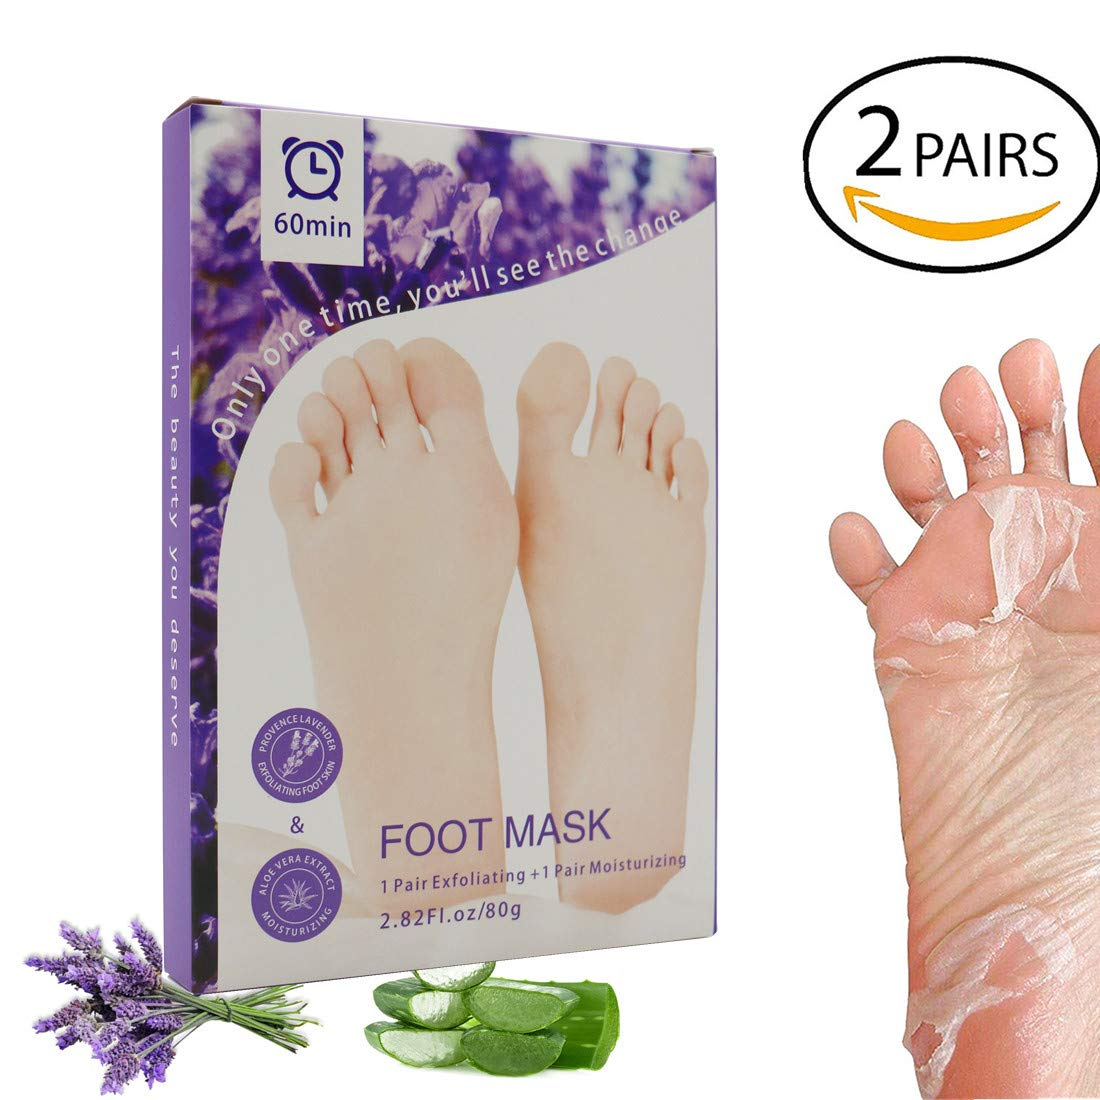 Foot Peel Mask 2 Pairs, Peeling Away Calluses and Dead Skin cells 1-2 Weeks, Make Your Feet Baby Soft, Exfoliating Foot Mask, Repair Rough Heels, Get Soft & Smooth Feet